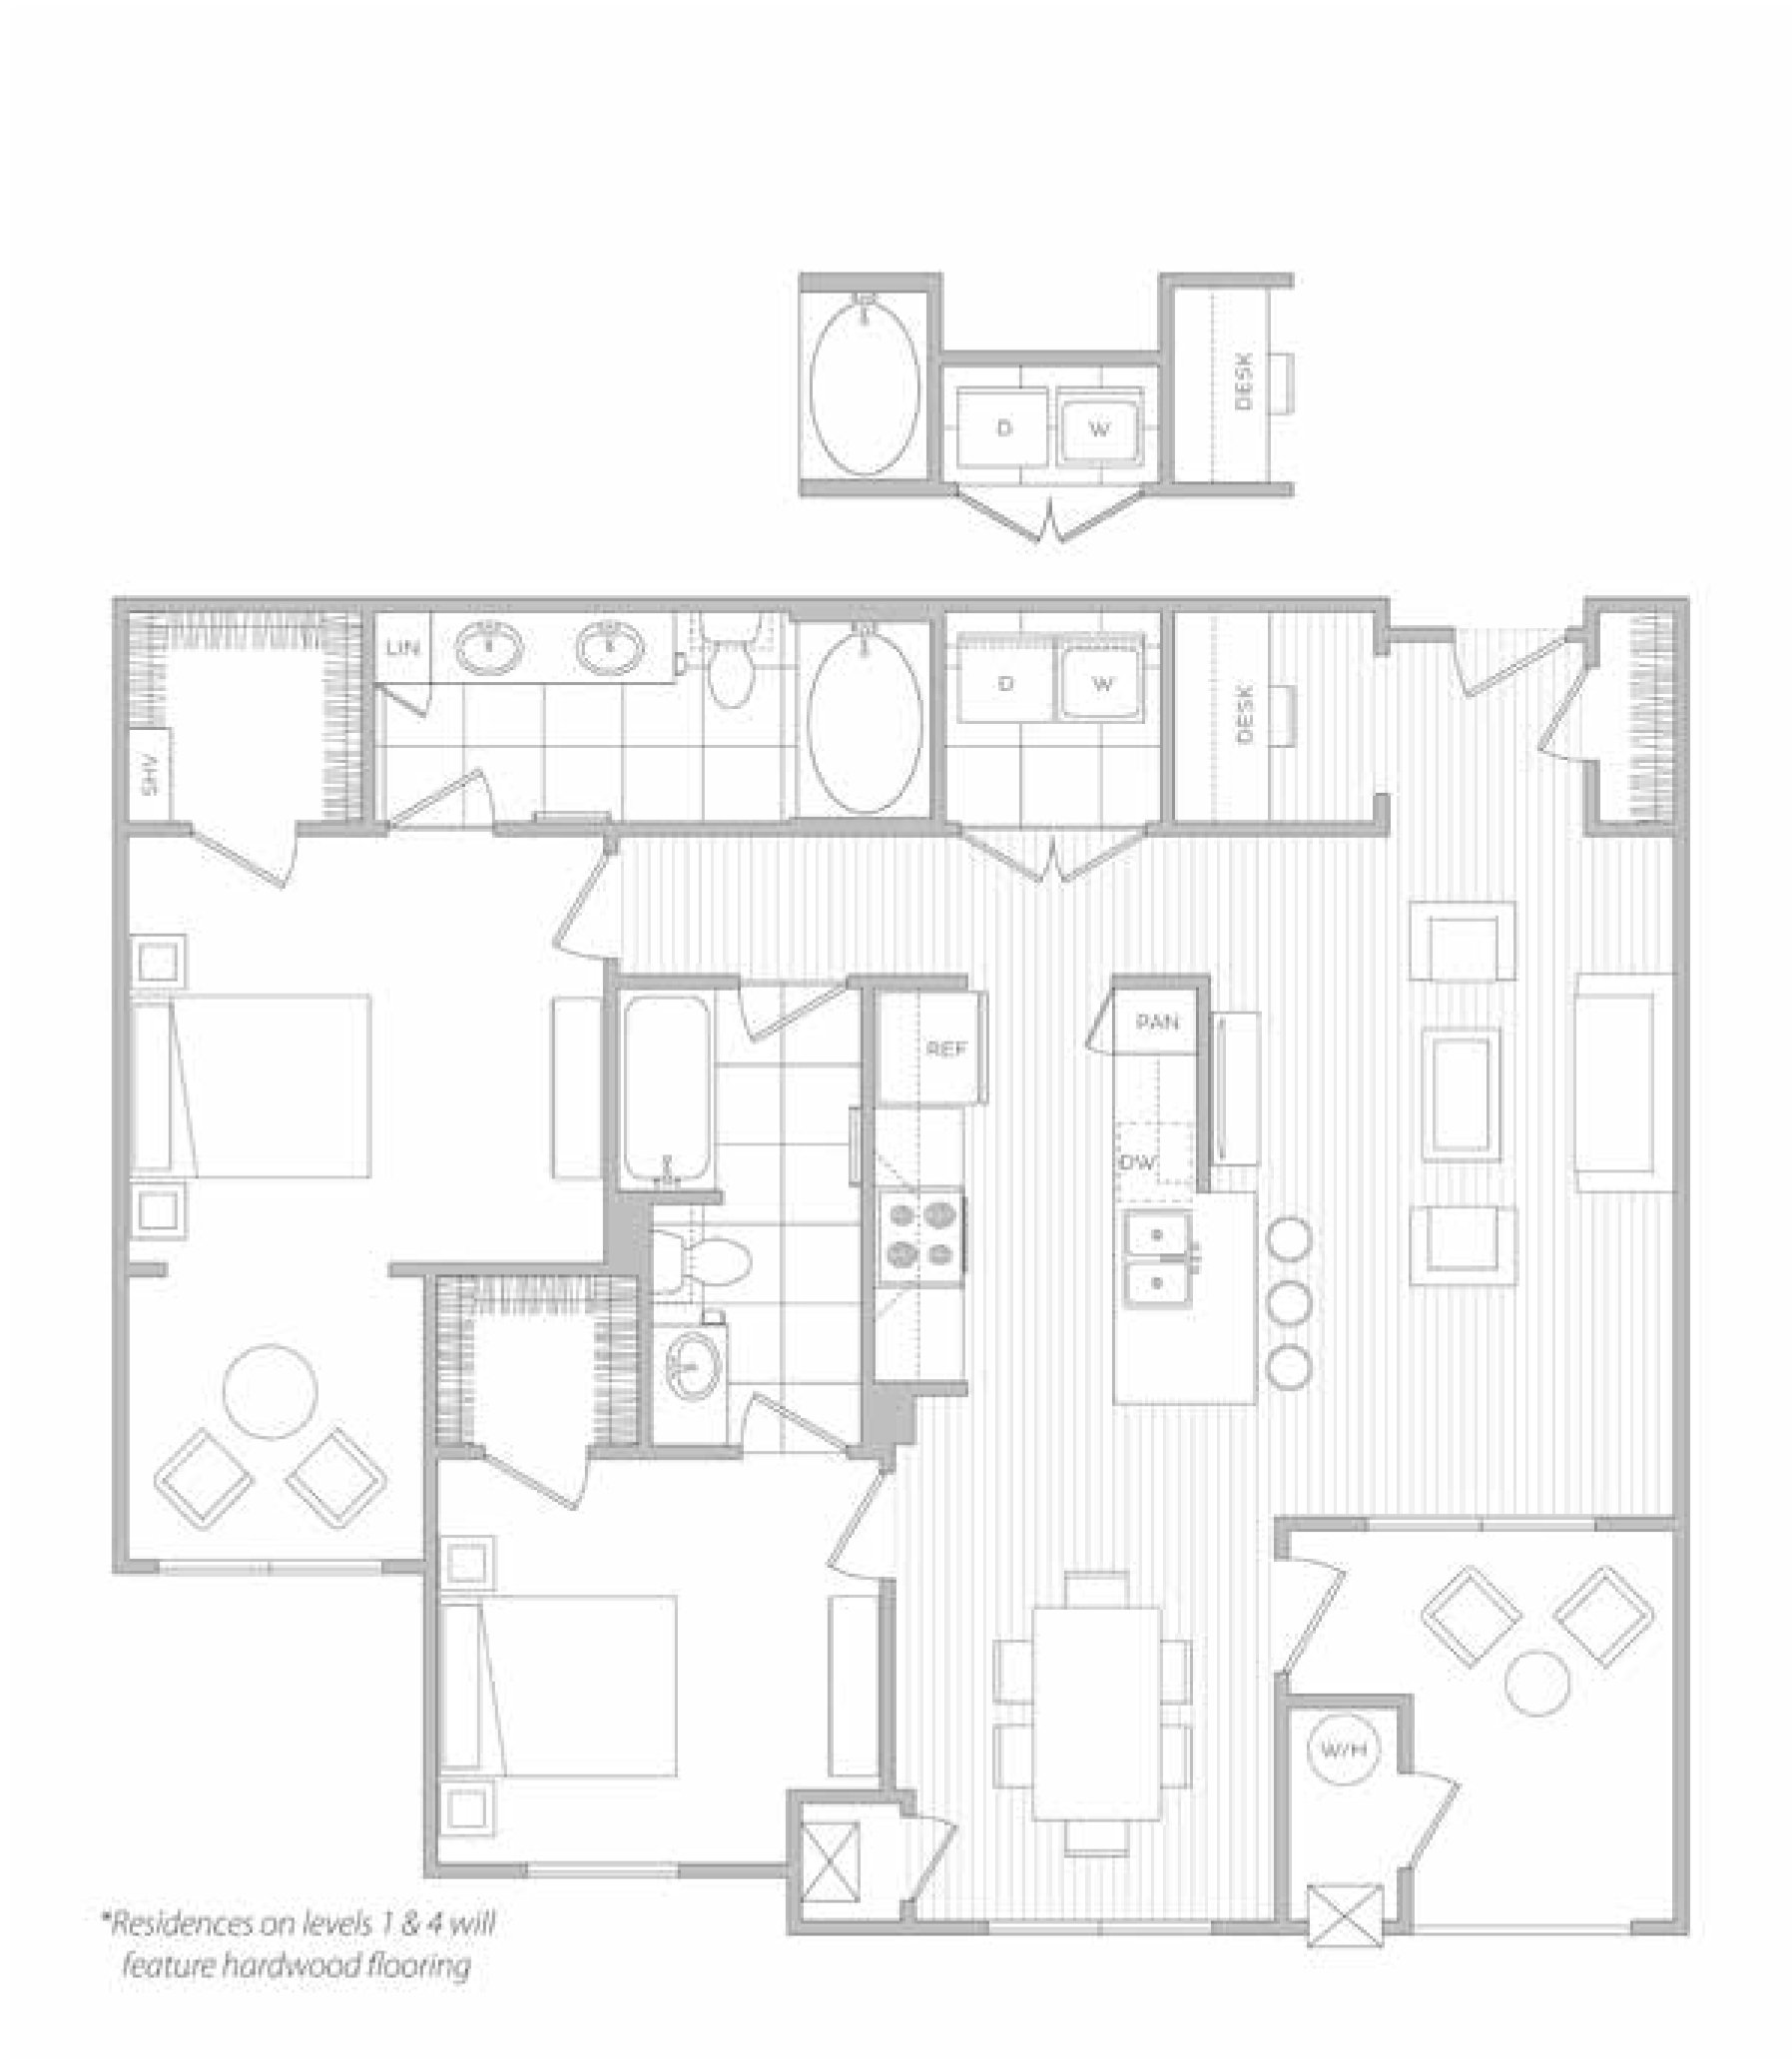 floor plan image of apartment 4303